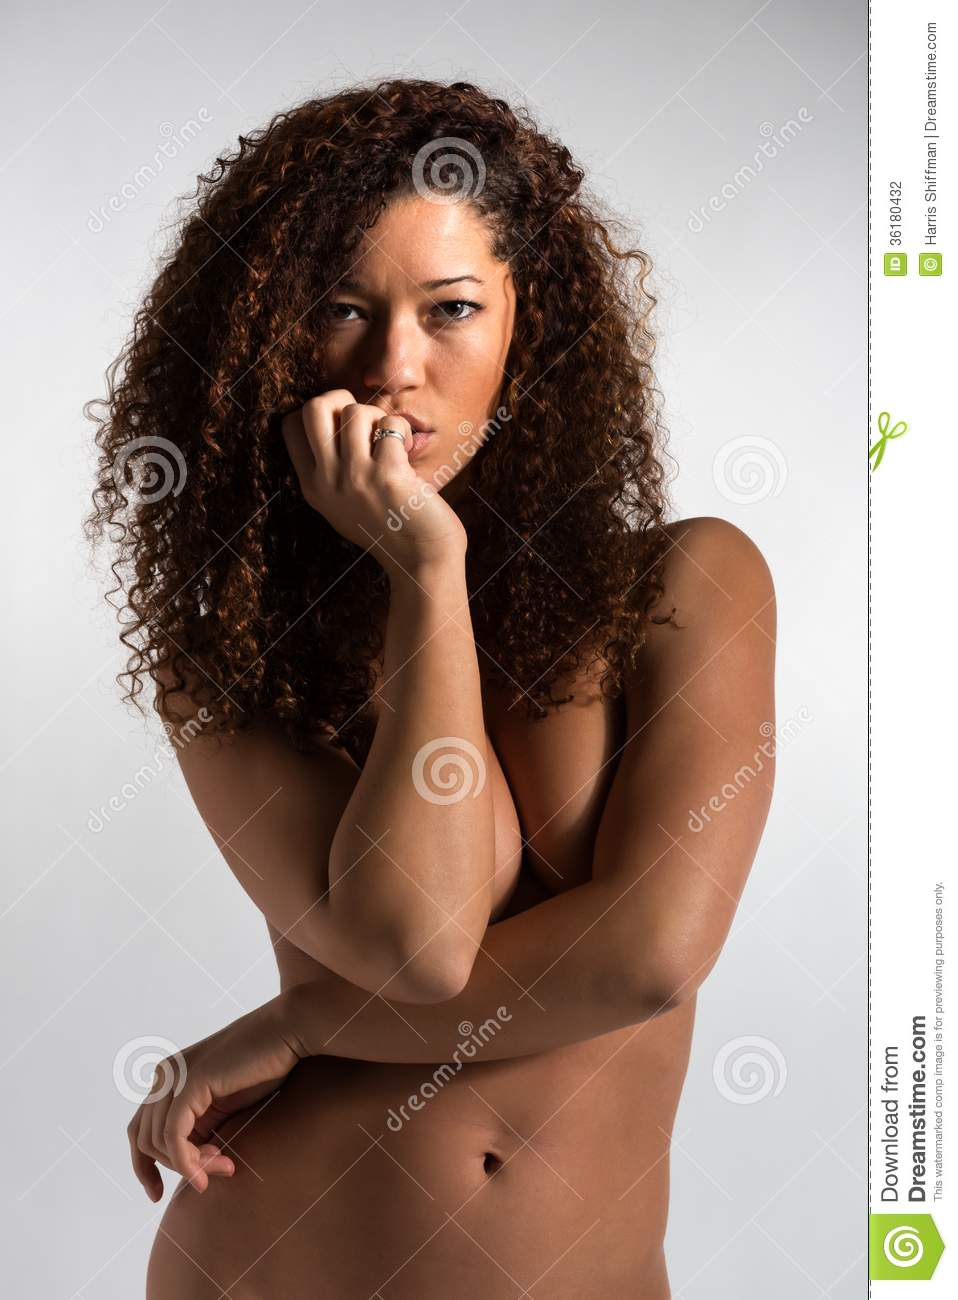 Stock photo portrait of a beautiful mixed race woman by kkgas